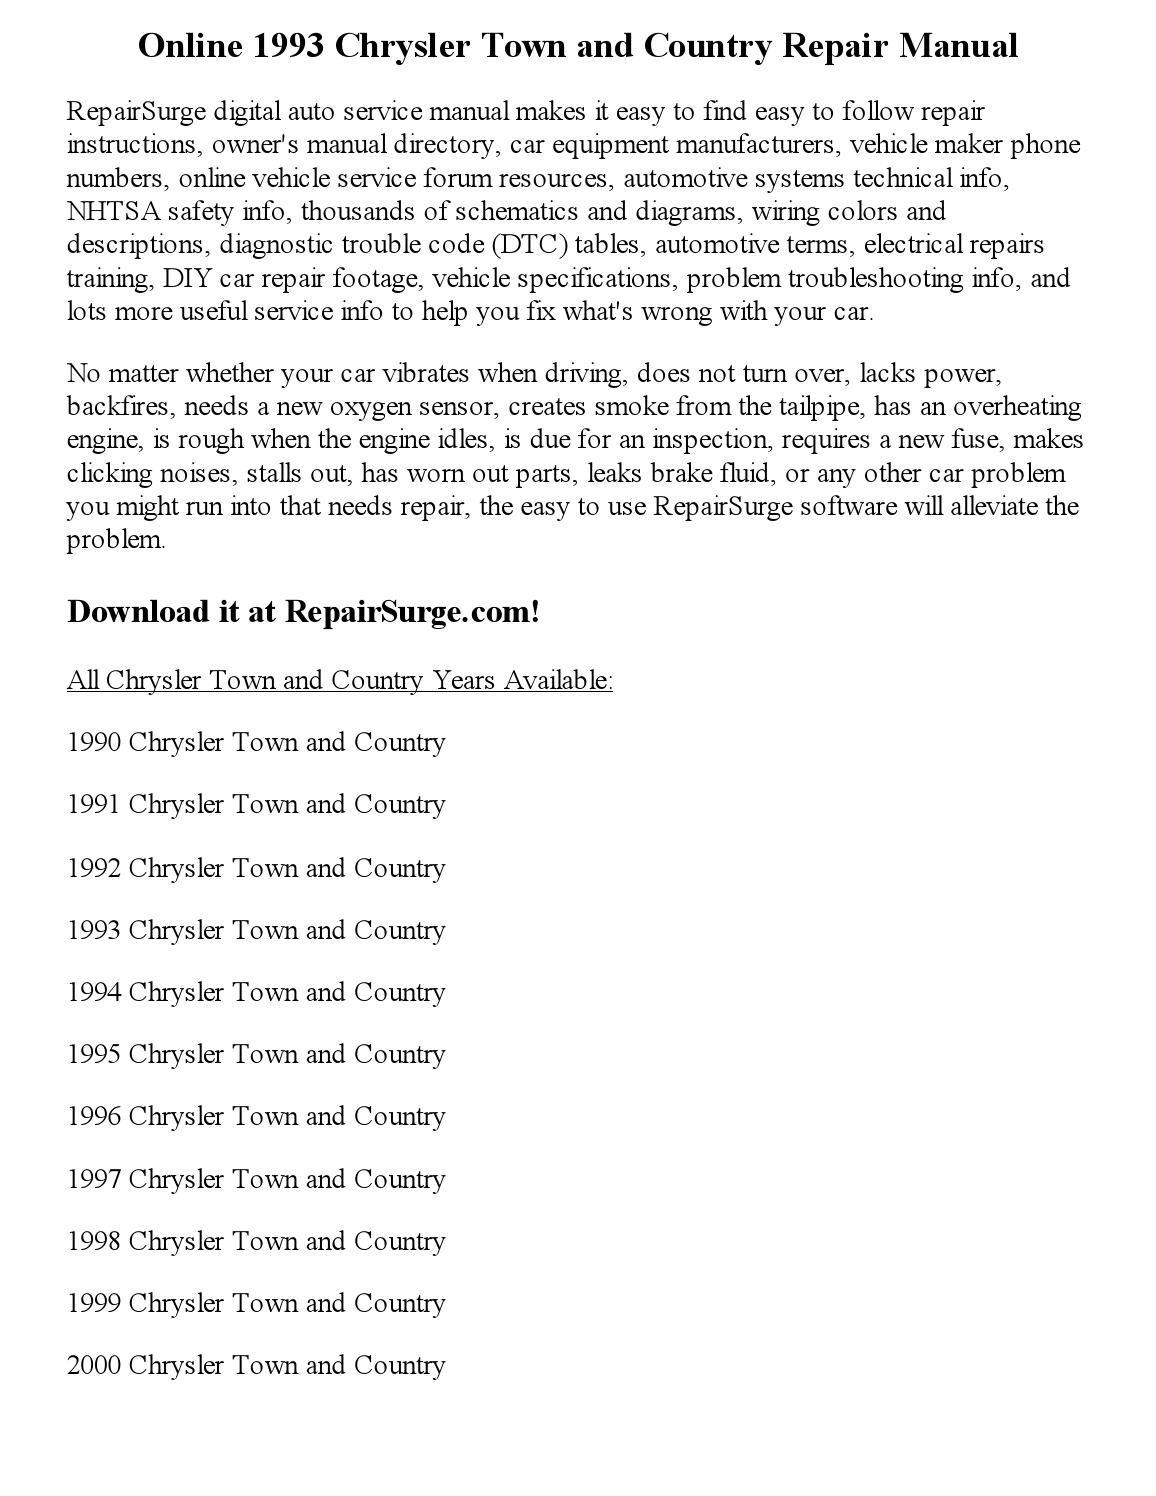 1993 chrysler town and country repair manual online by Jackson Paul - issuu